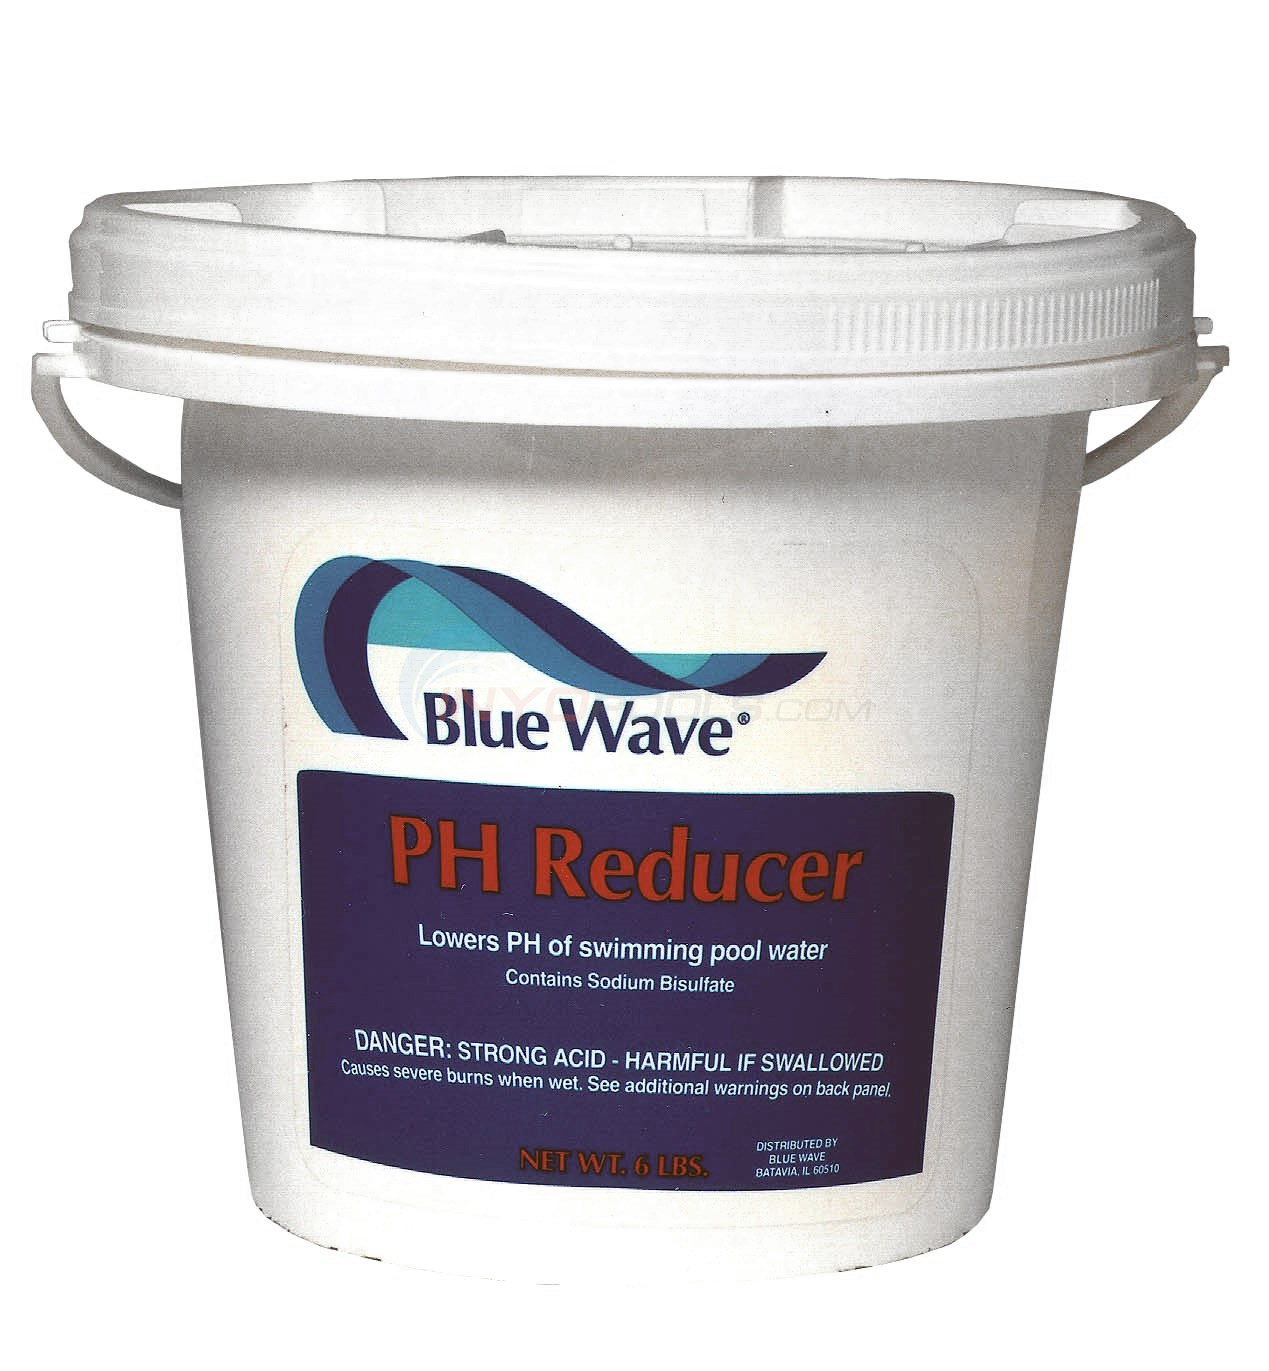 pH Reducer 6 lb. pail